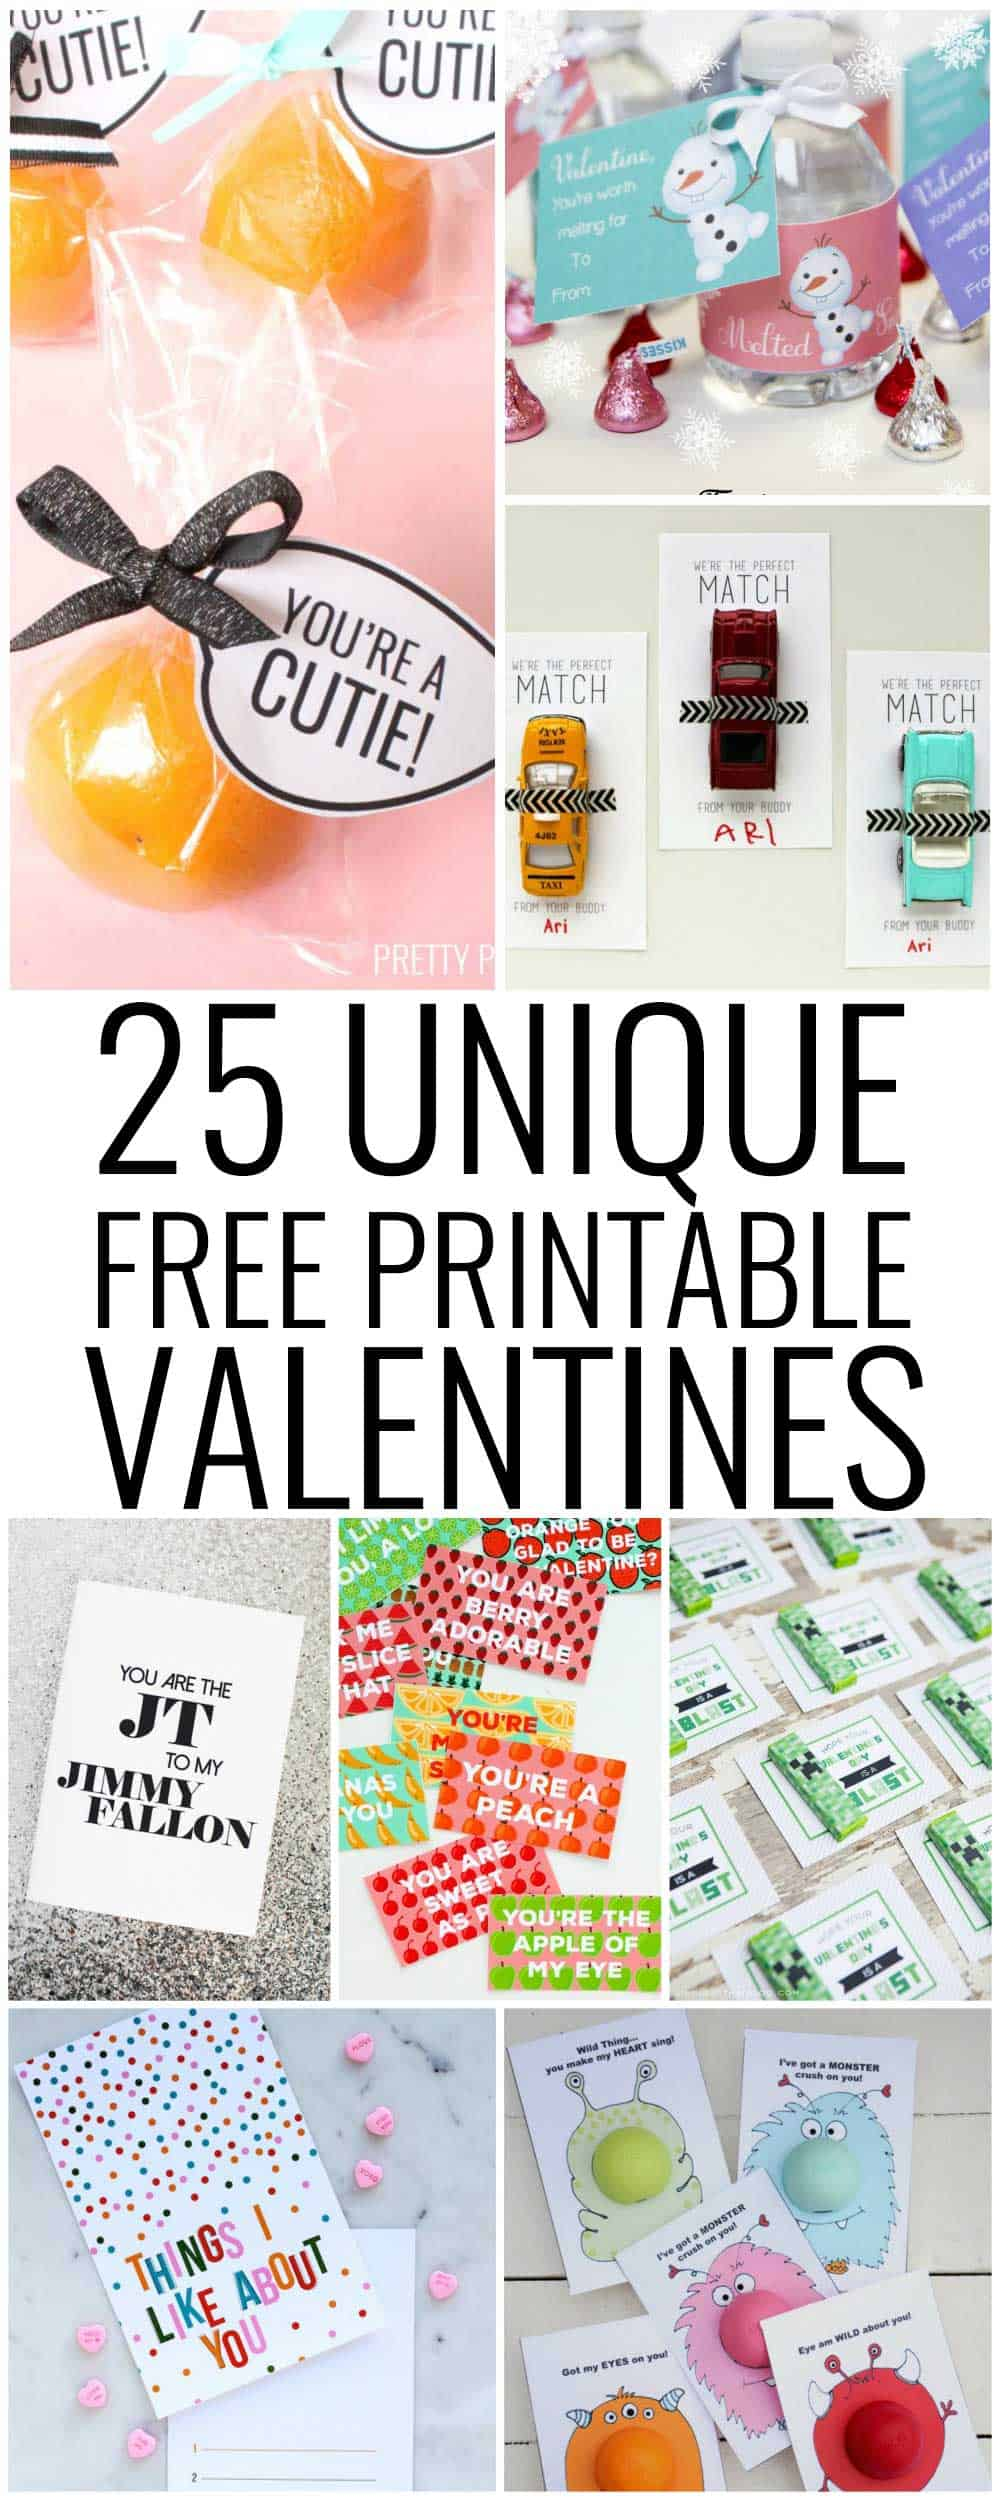 valentines-free-printable-pin